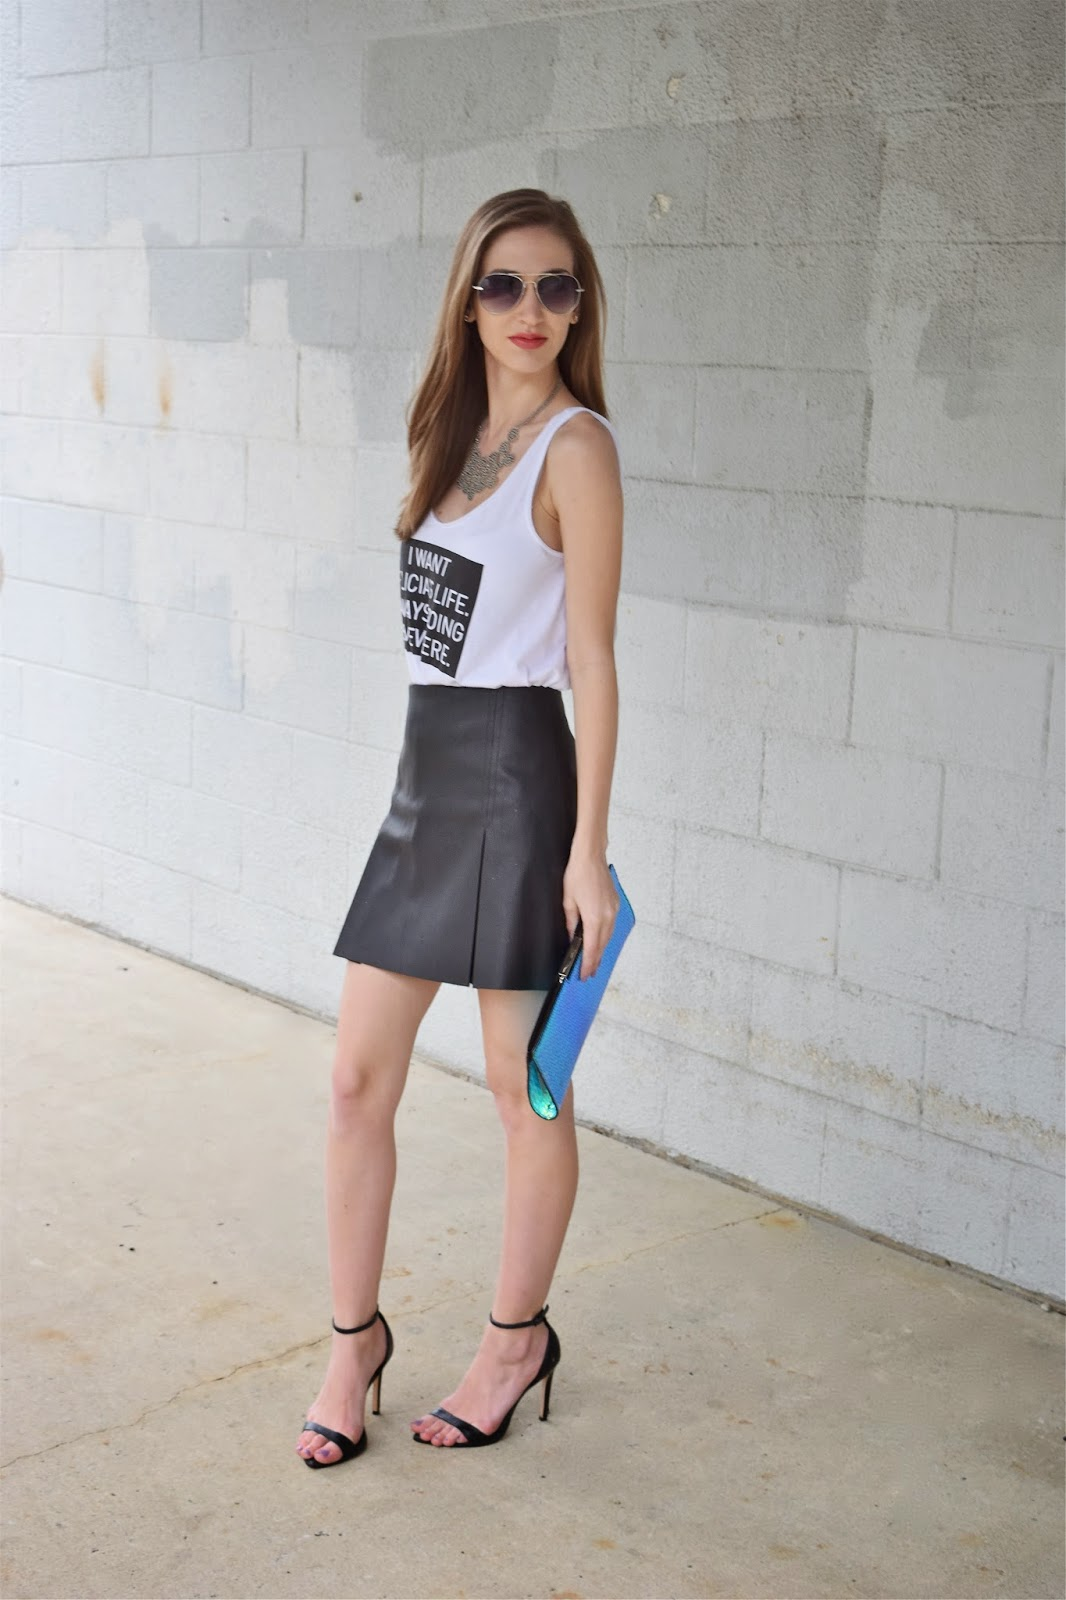 Wearing Ten Sixty Sherman I want Felicia's Life Graphic Tee, Express Faux Leather pleated skirt, ankle strap heels, dressed up graphic tee look